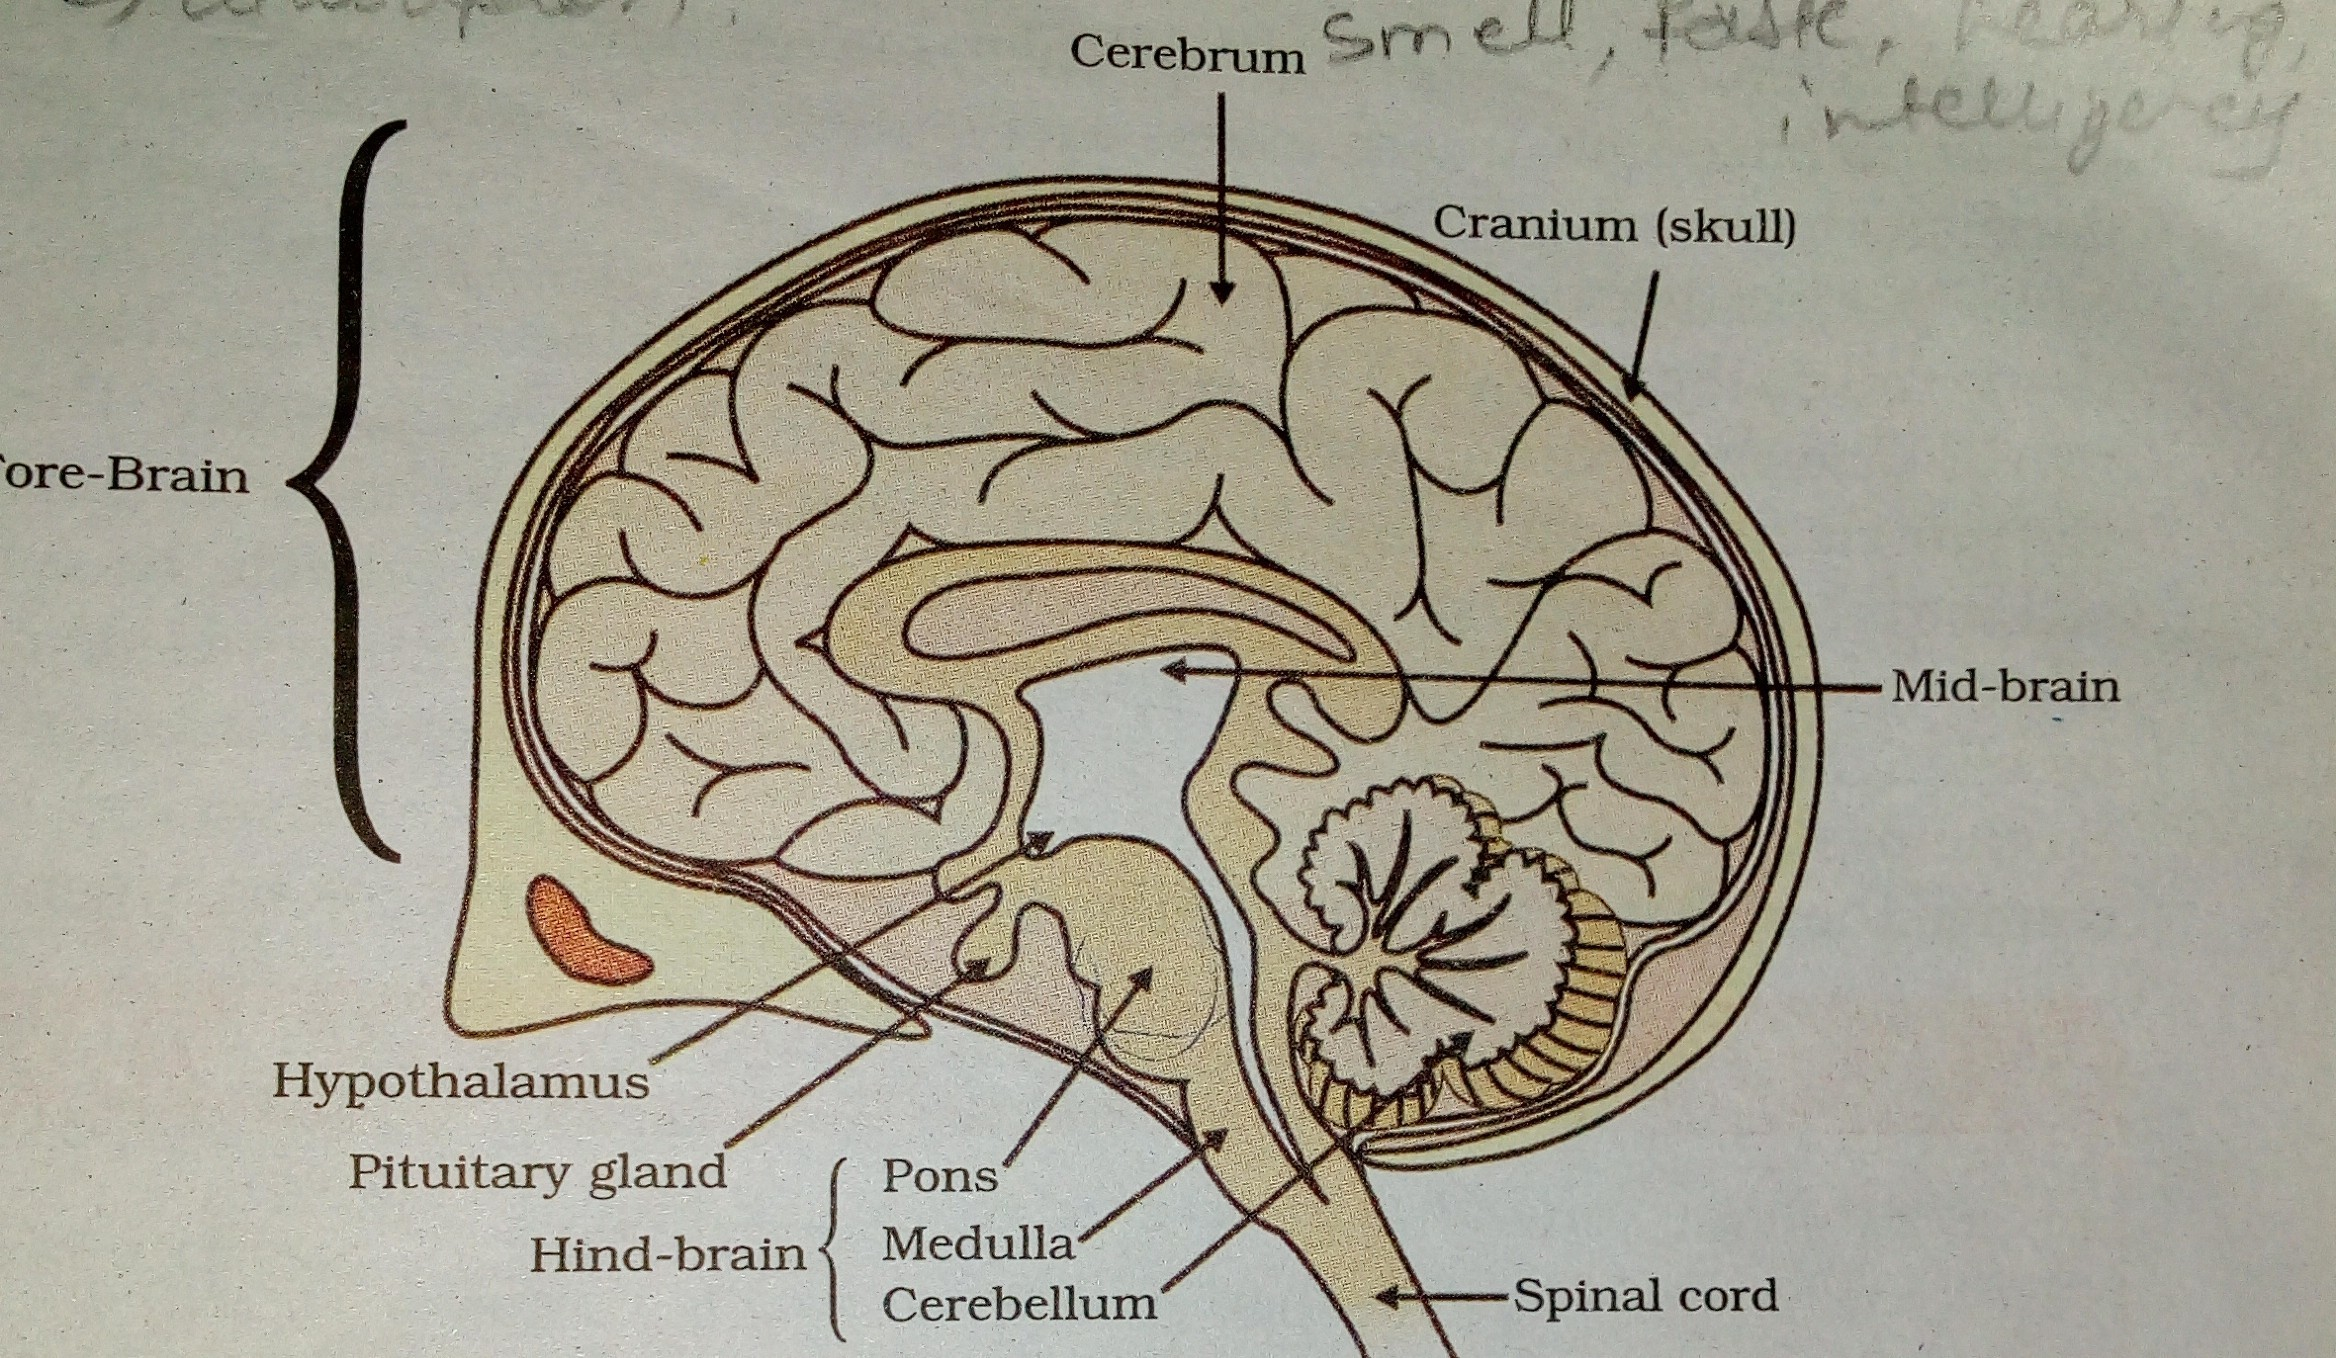 A I Draw A Neat Diagram Of Human Brain And Ii Label Medulla And